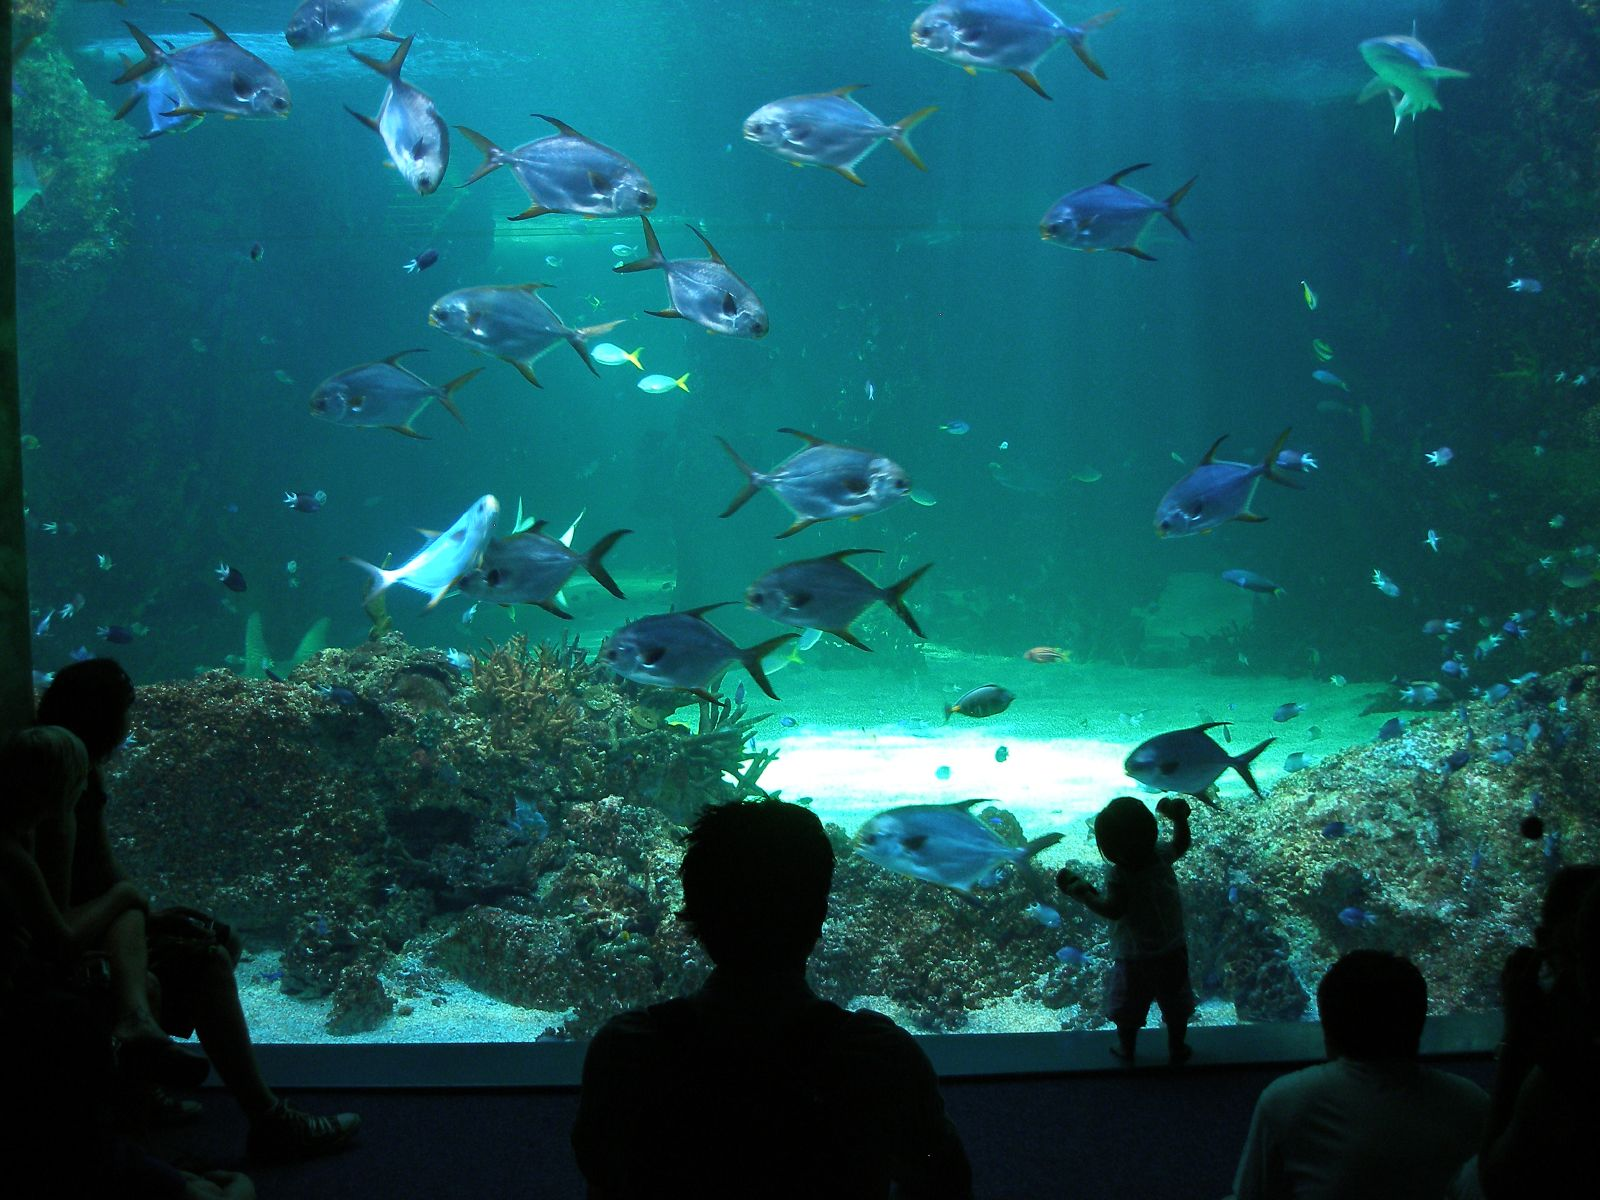 Sea Life Sydney Aquarium, Sydney